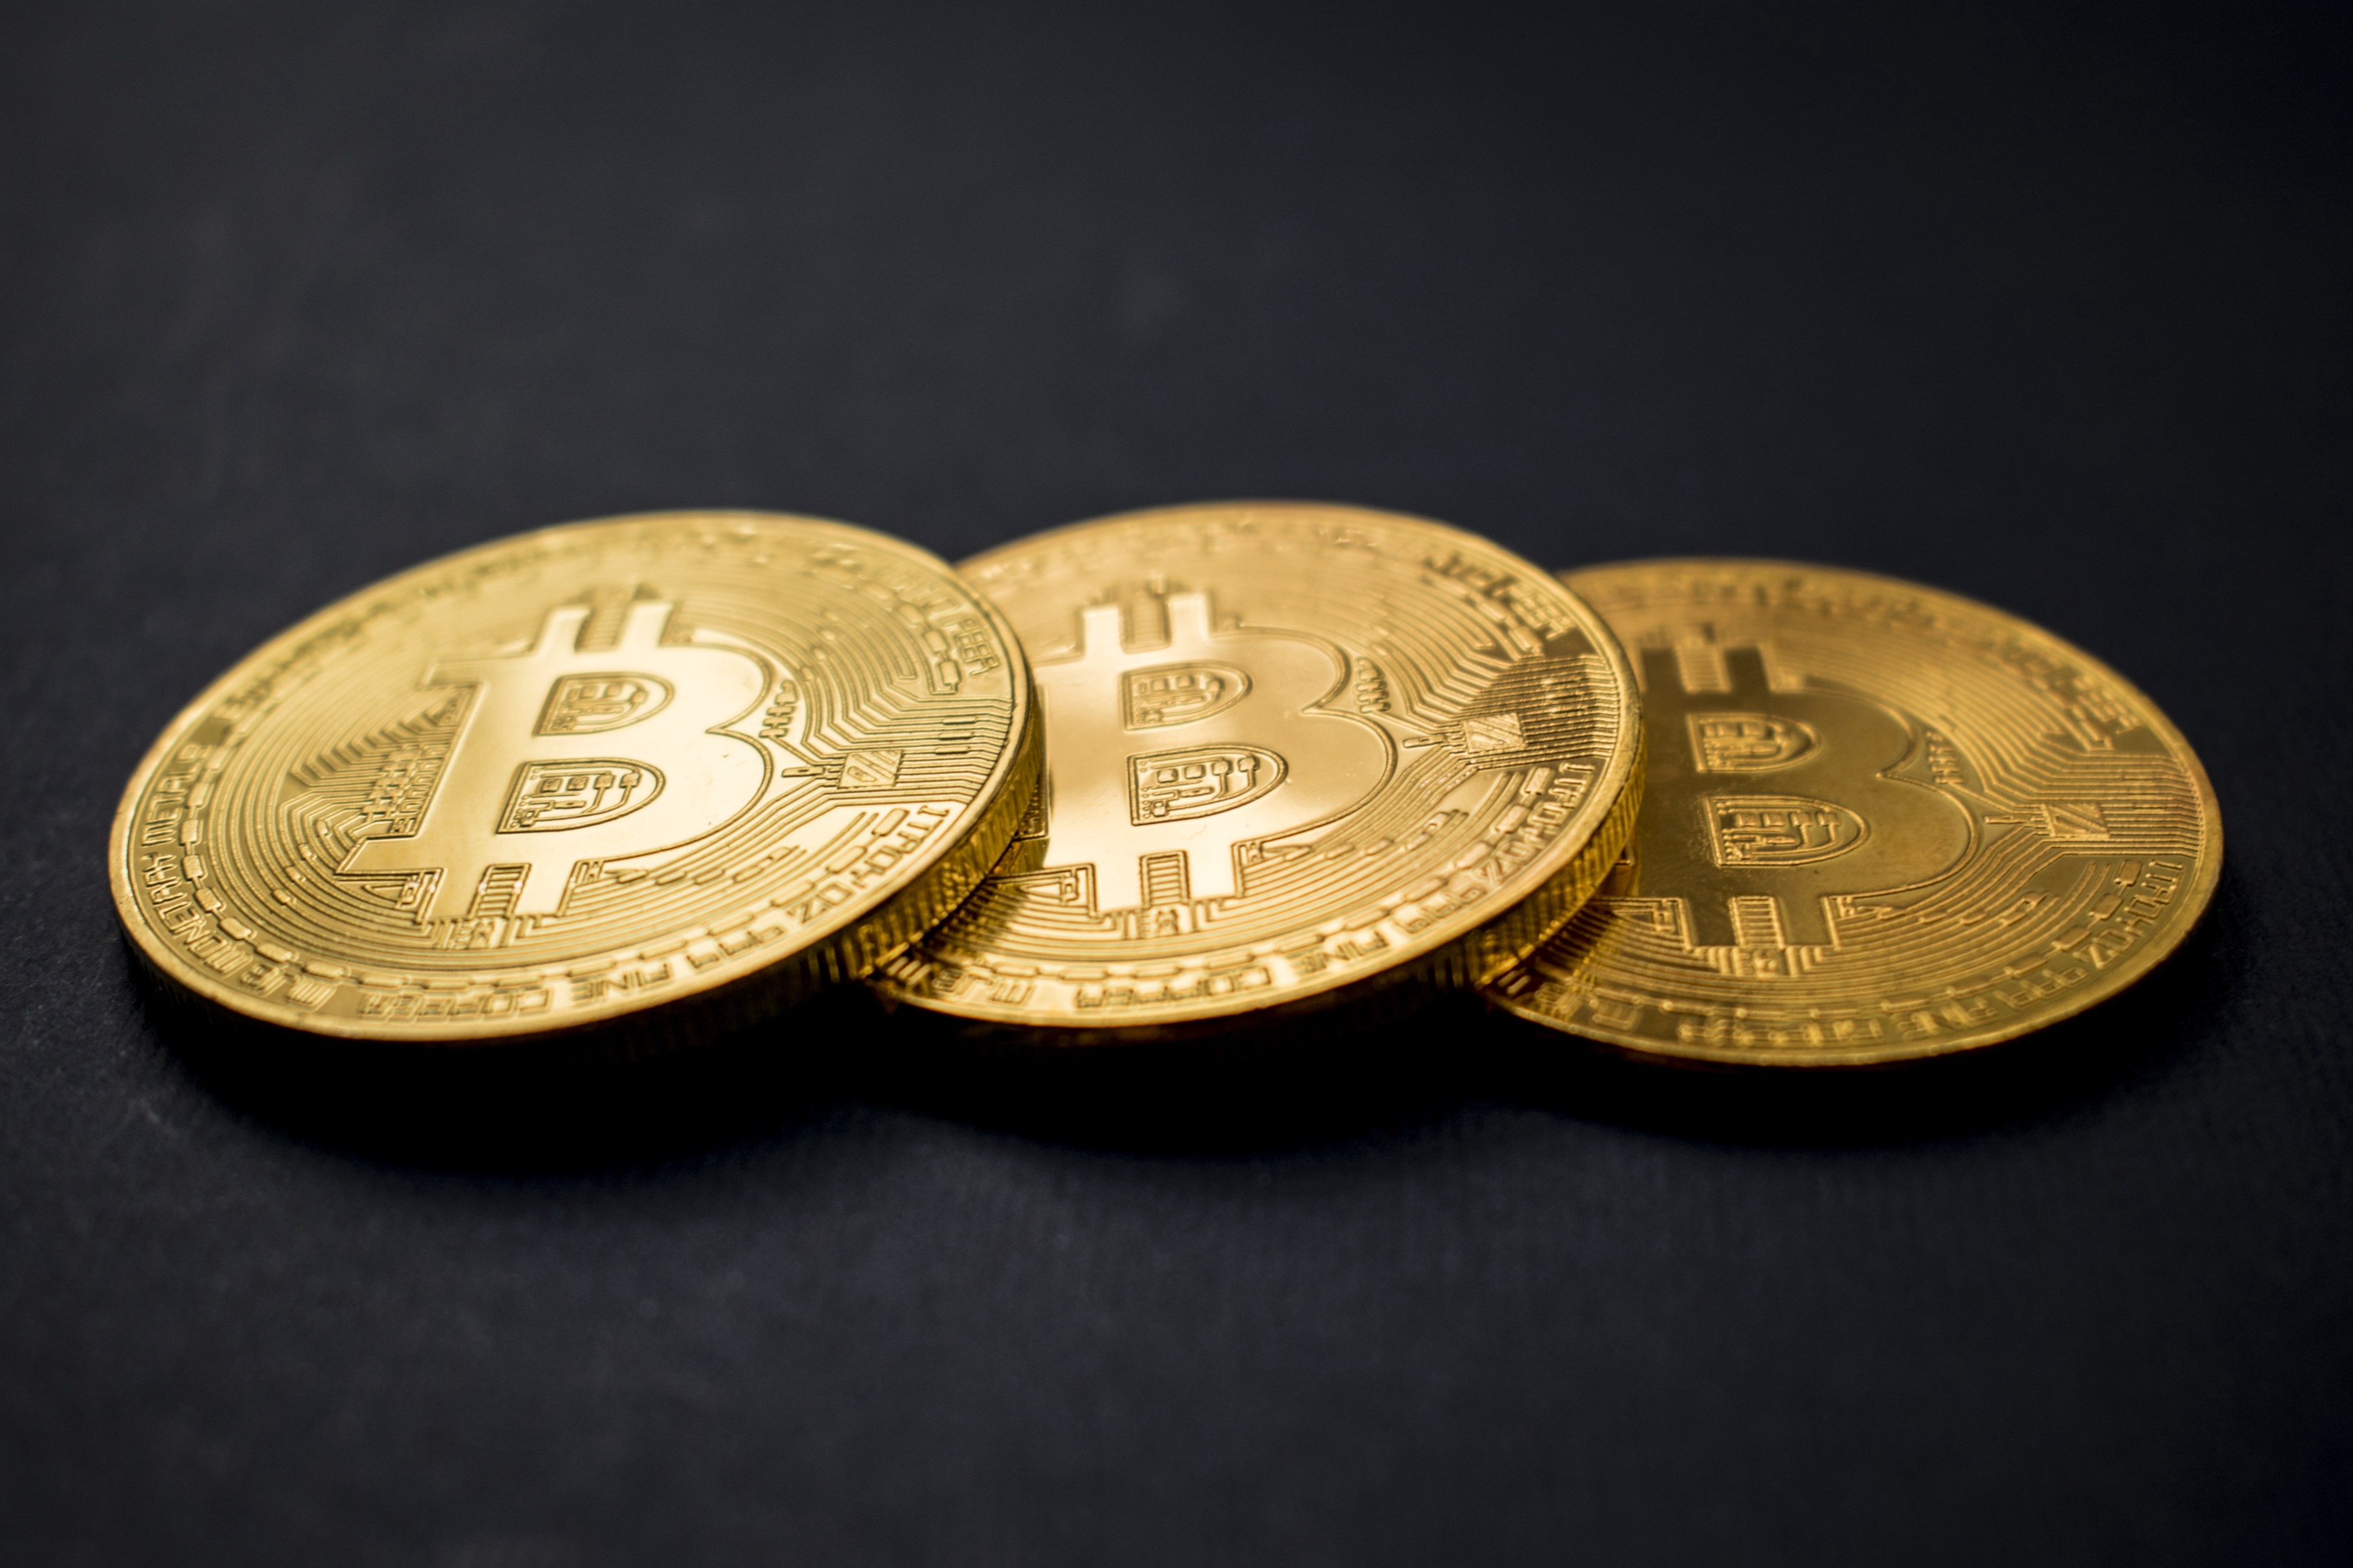 How is basis determined for cryptocurrency